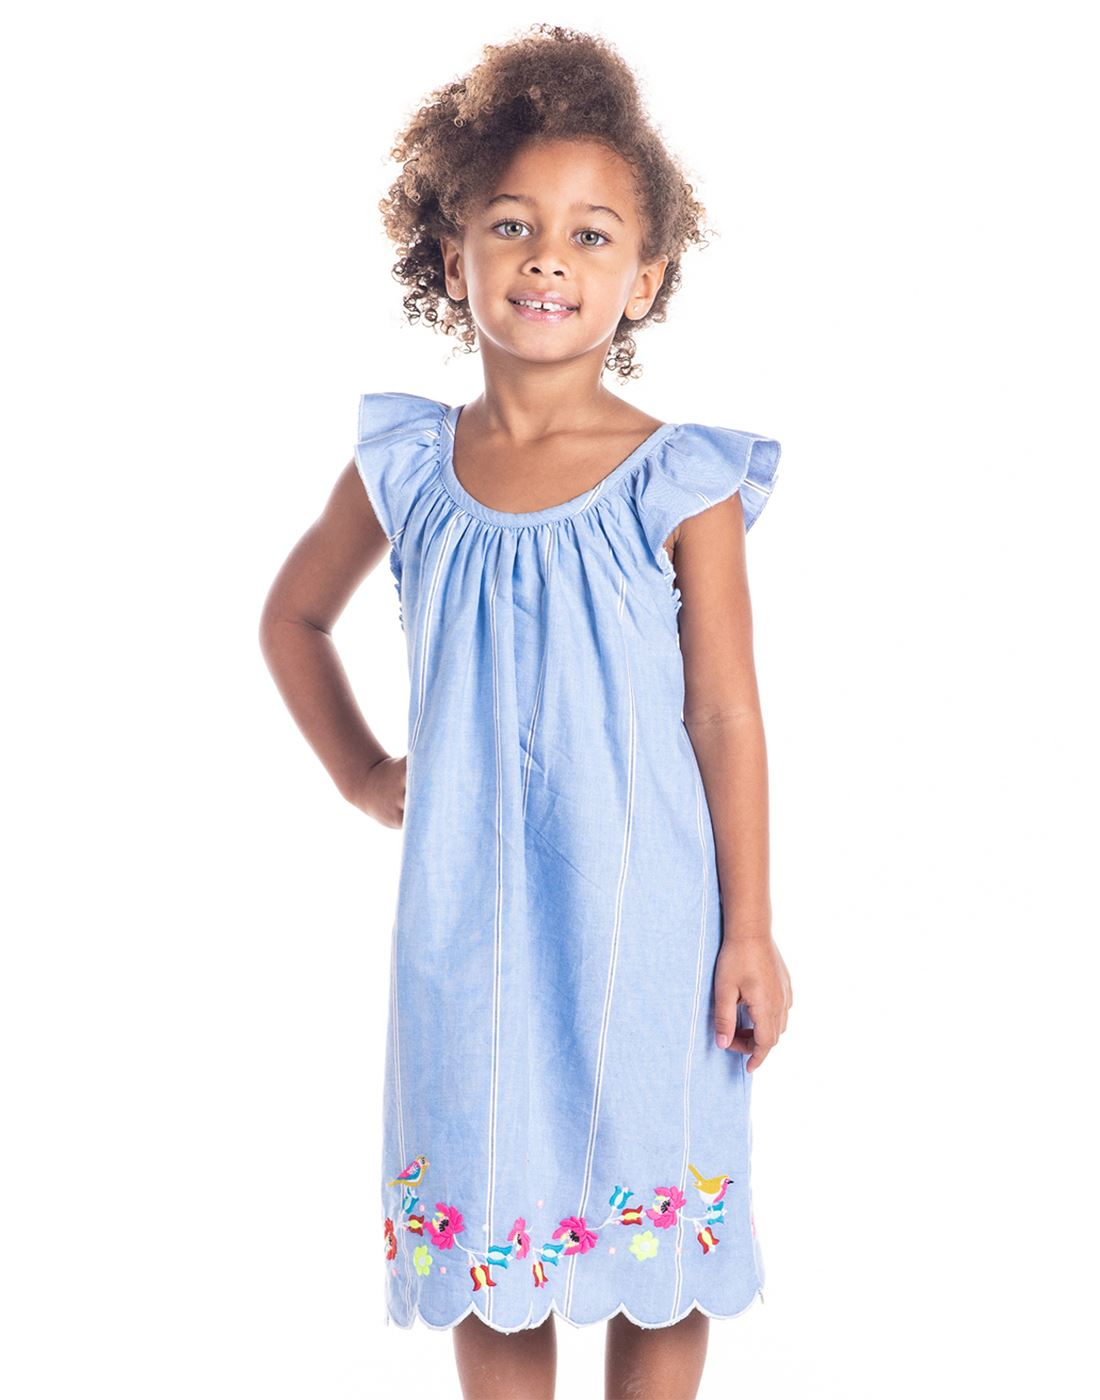 Cherry Crumble California Casual Wear Embroidered Girls Dresses